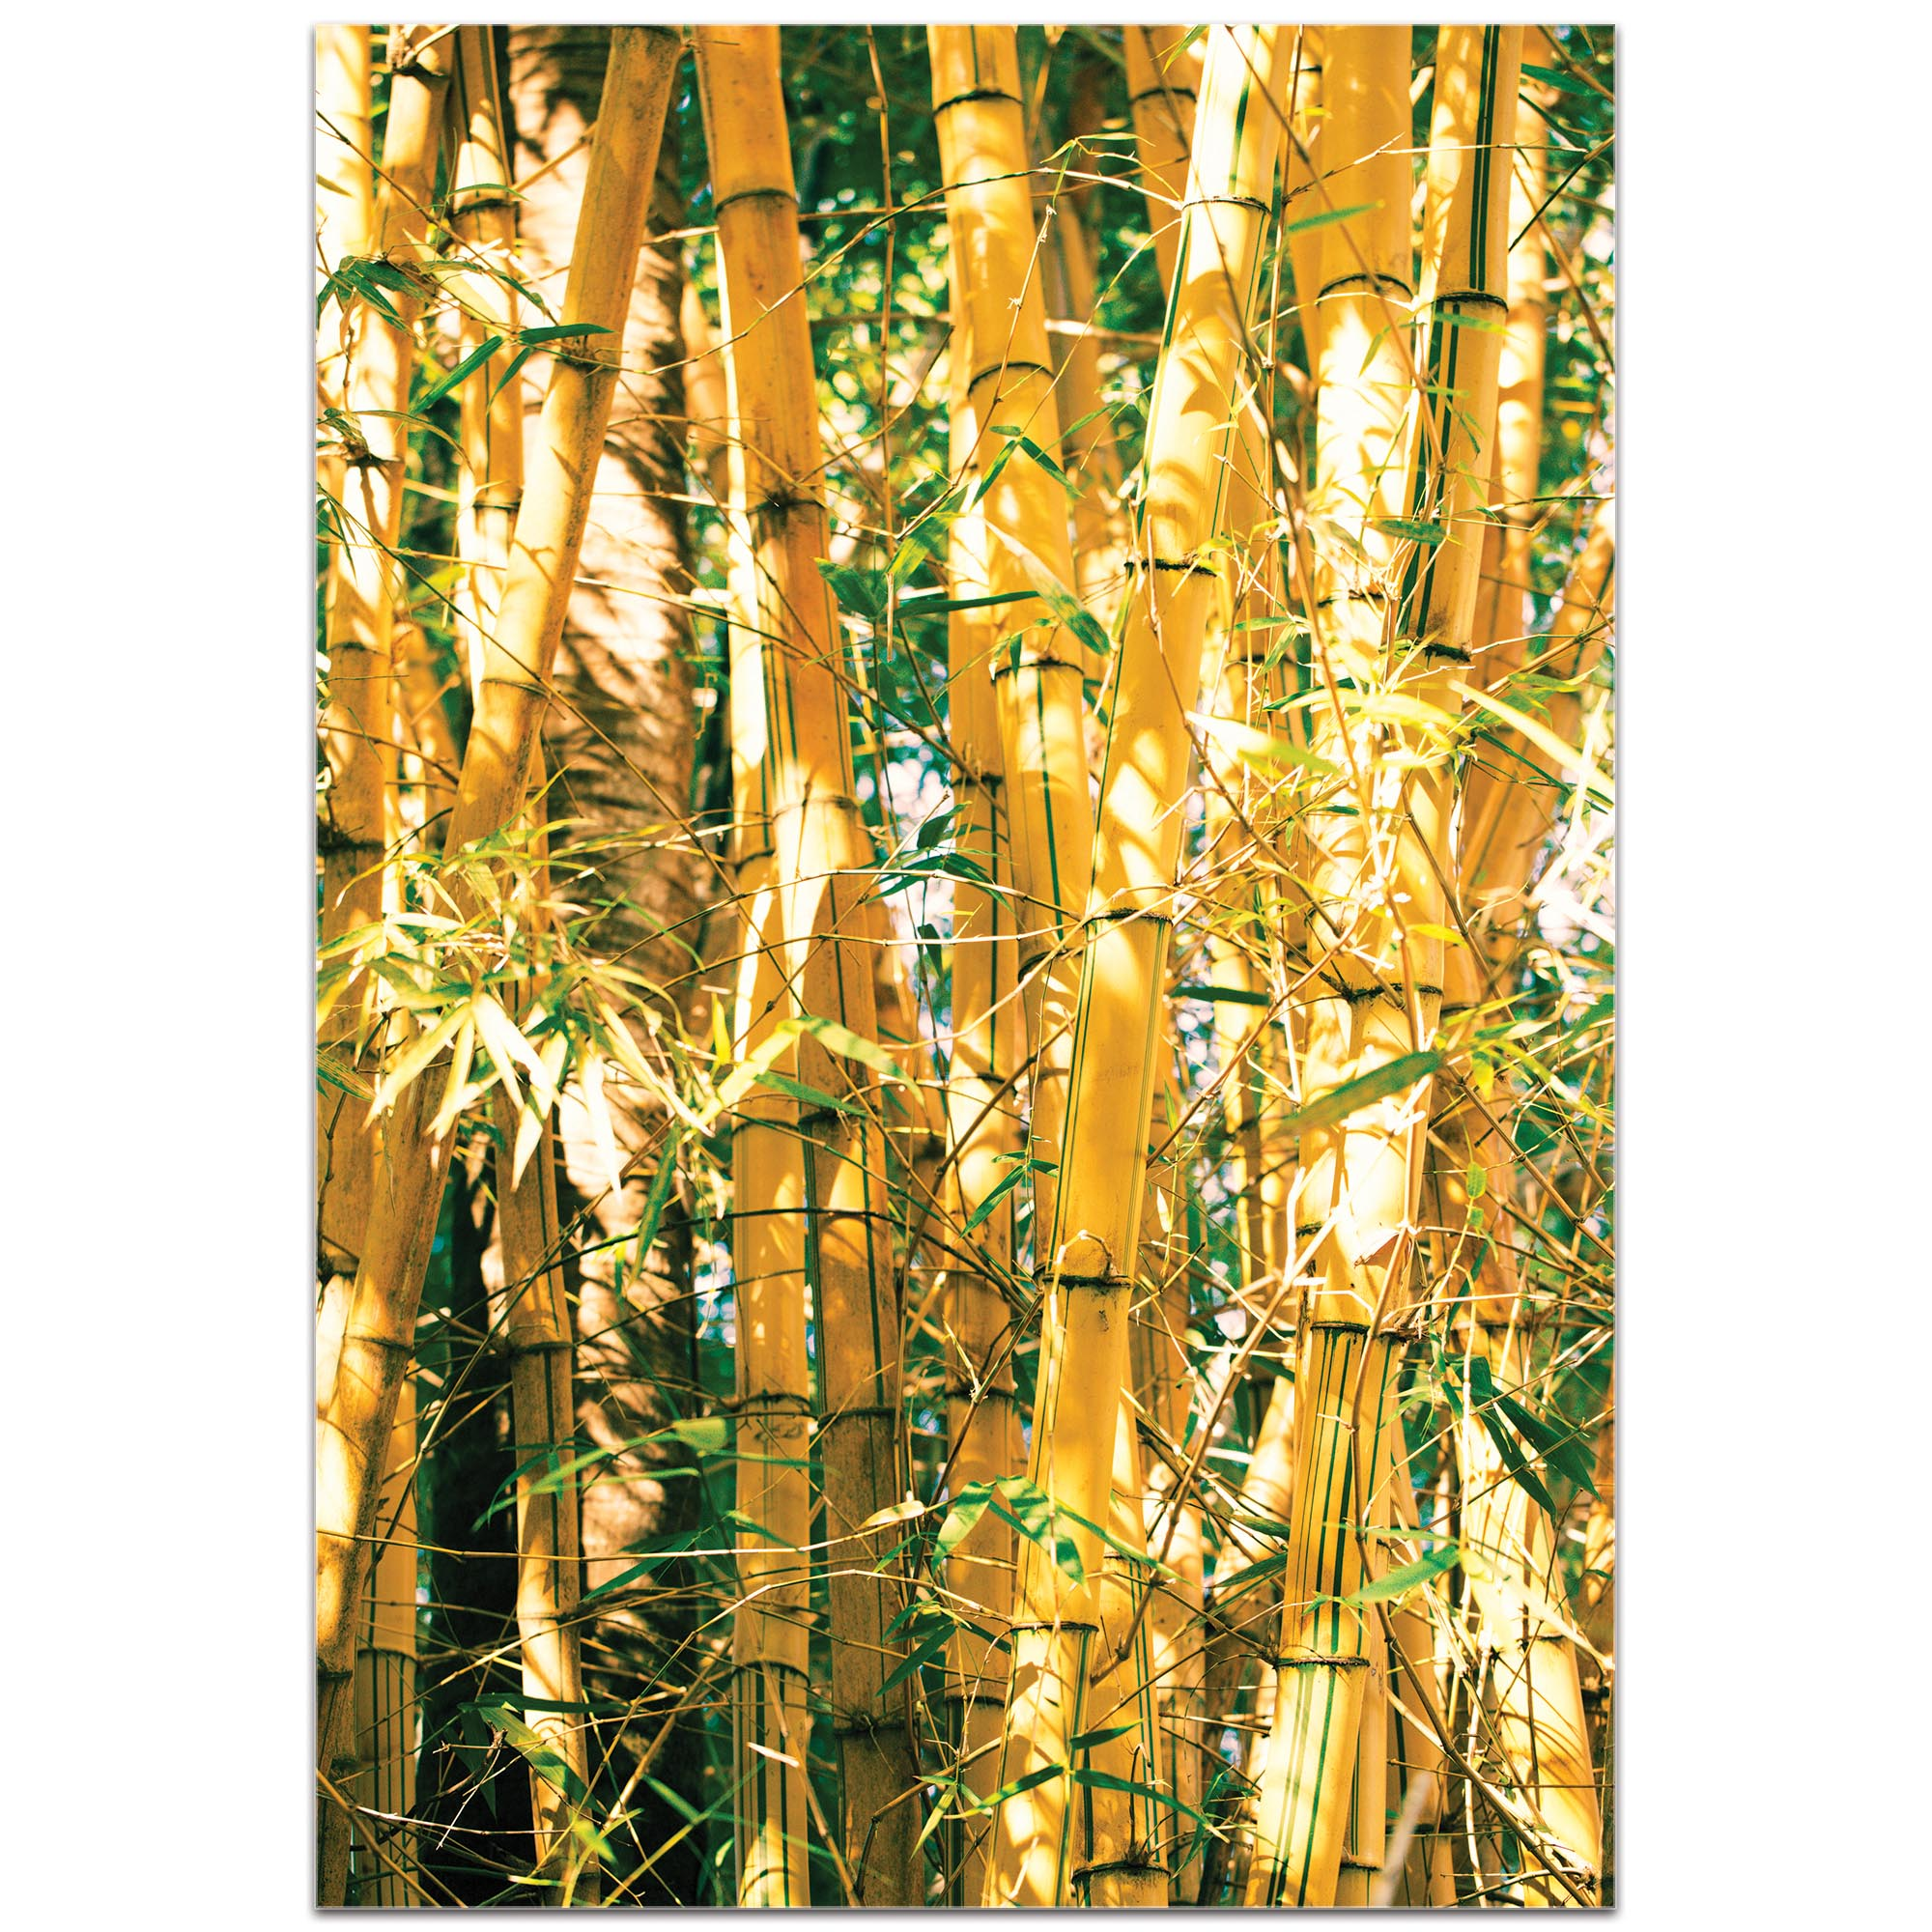 Asian Wall Art 'Bamboo Gold' - Bamboo Decor on Metal or Plexiglass - Image 2